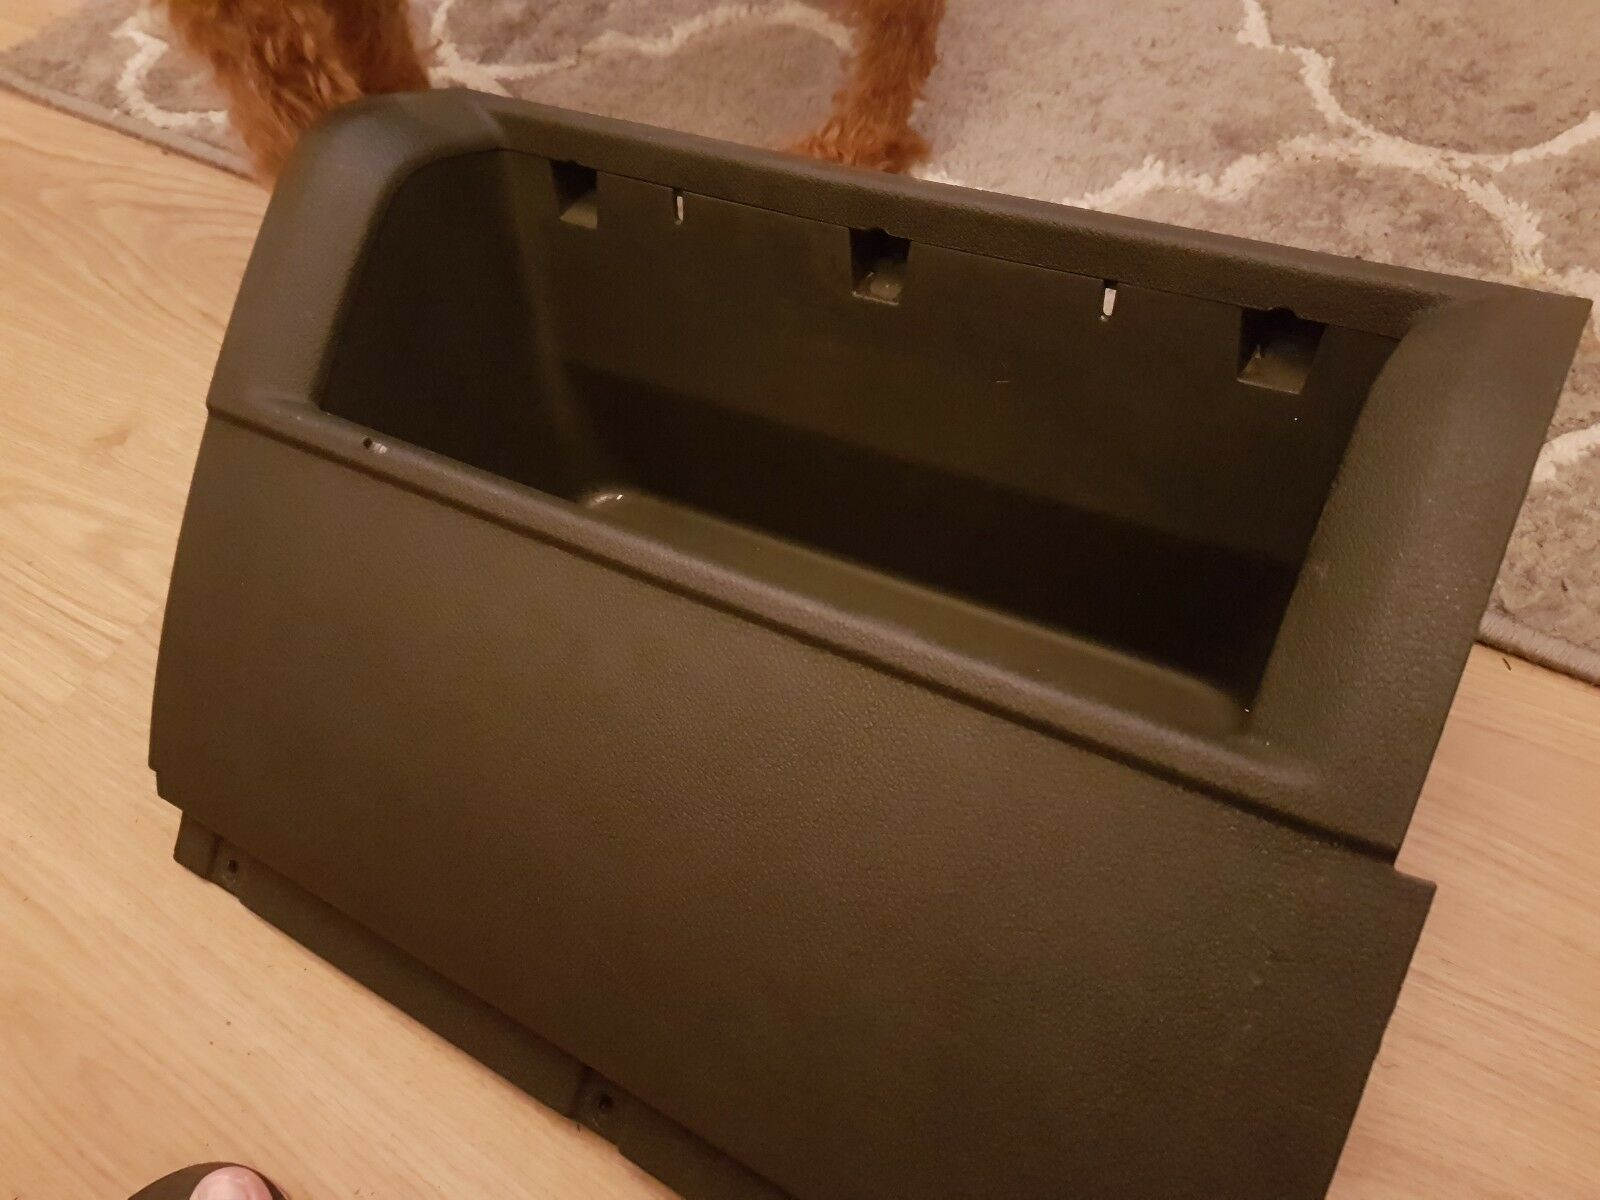 Vw caddy glove box 2k2 857 99 d cubby box 999 picclick uk 1 of 9only 1 available freerunsca Choice Image